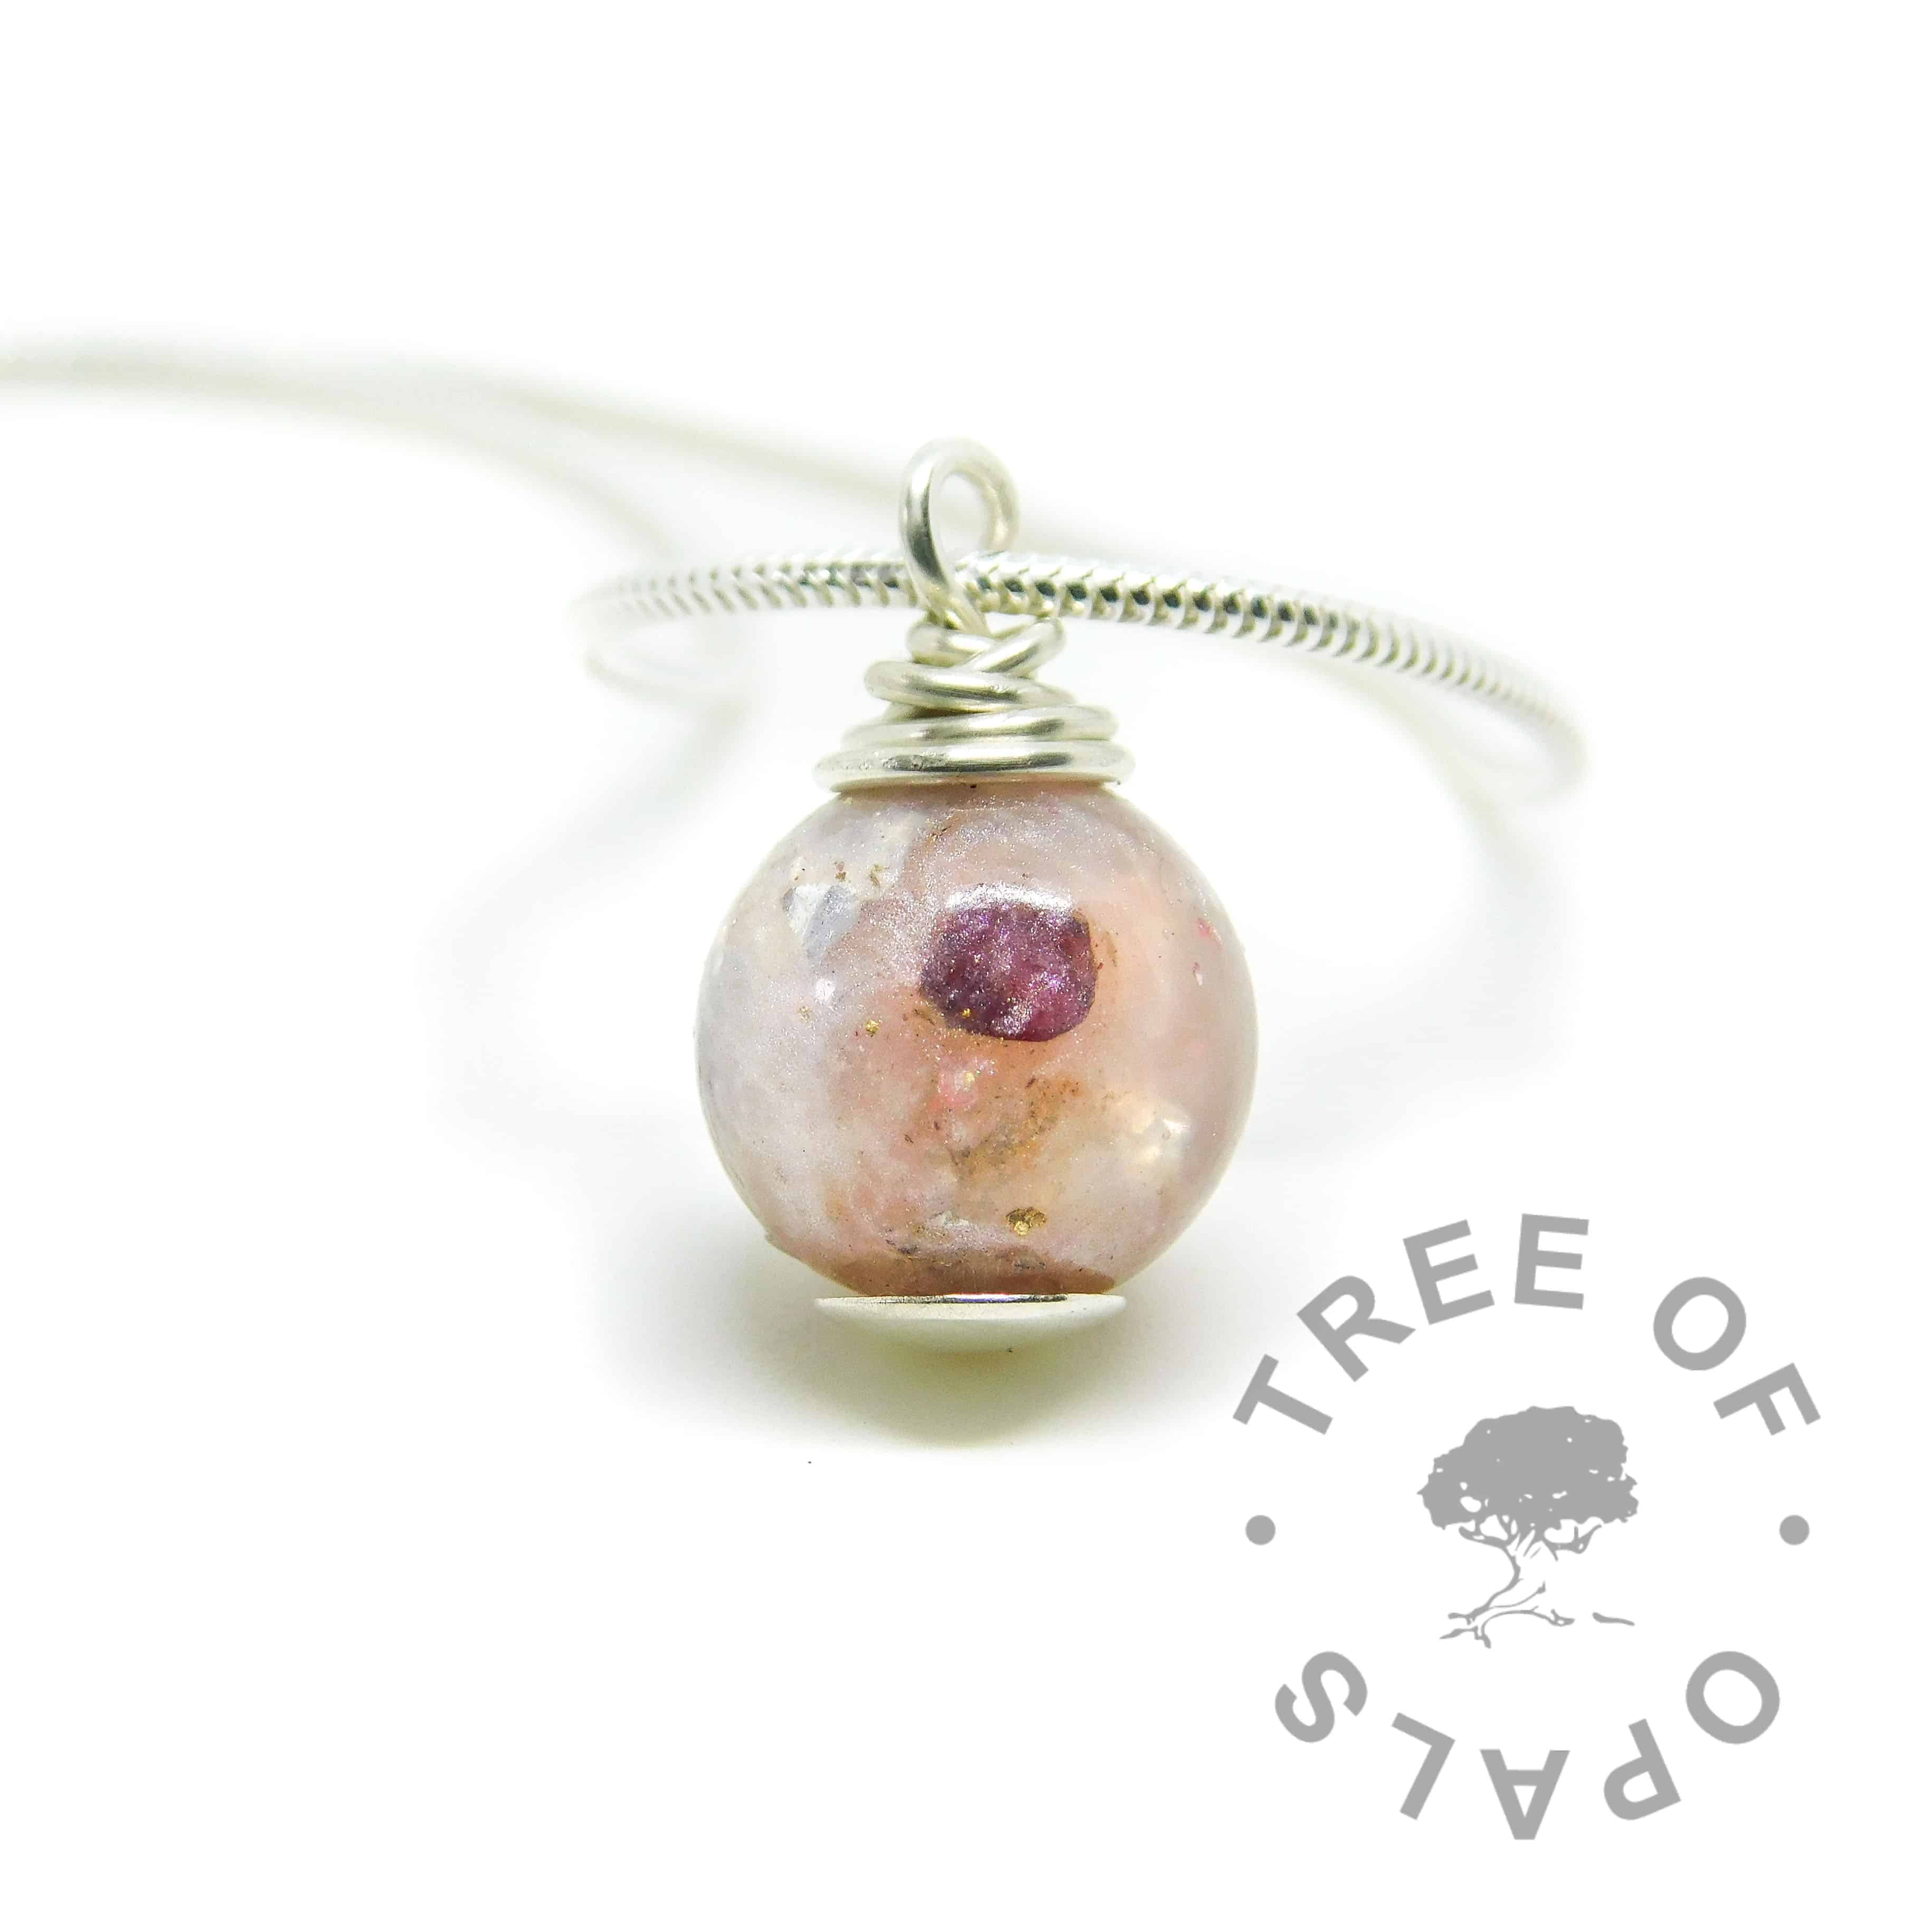 Umbilical cord pearl. Placenta umbilical cord with fairy pink resin sparkle mix, January birthstone red garnet, silver and gold leaf. Set with solid sterling handmade headpin and shown with a light snake chain necklace upgrade. Watermarked copyright image by Tree of Opals